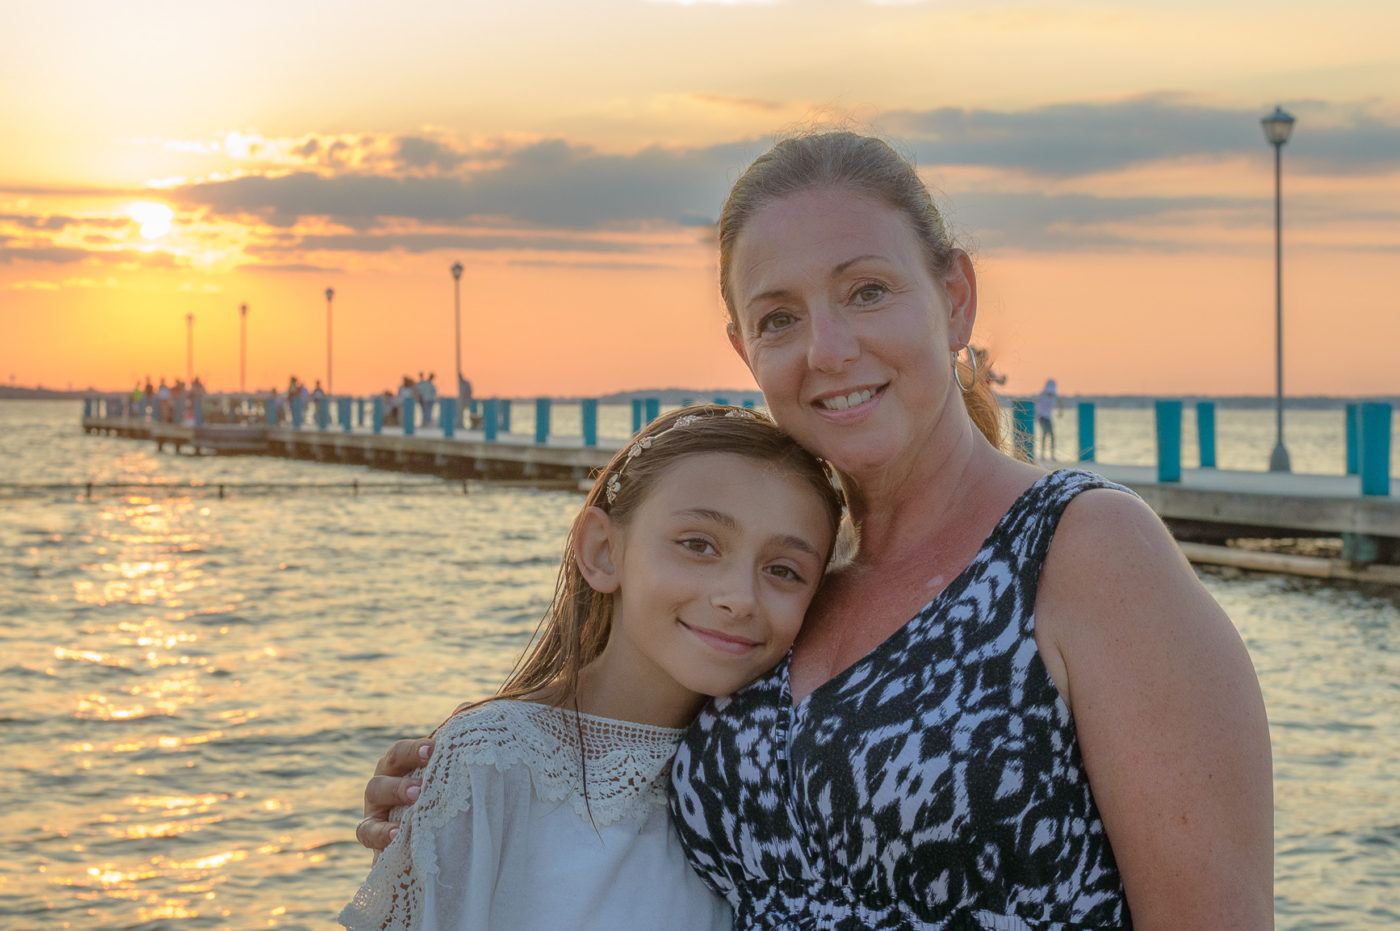 portraits of the jersey shore challenges of a middle school daughter-